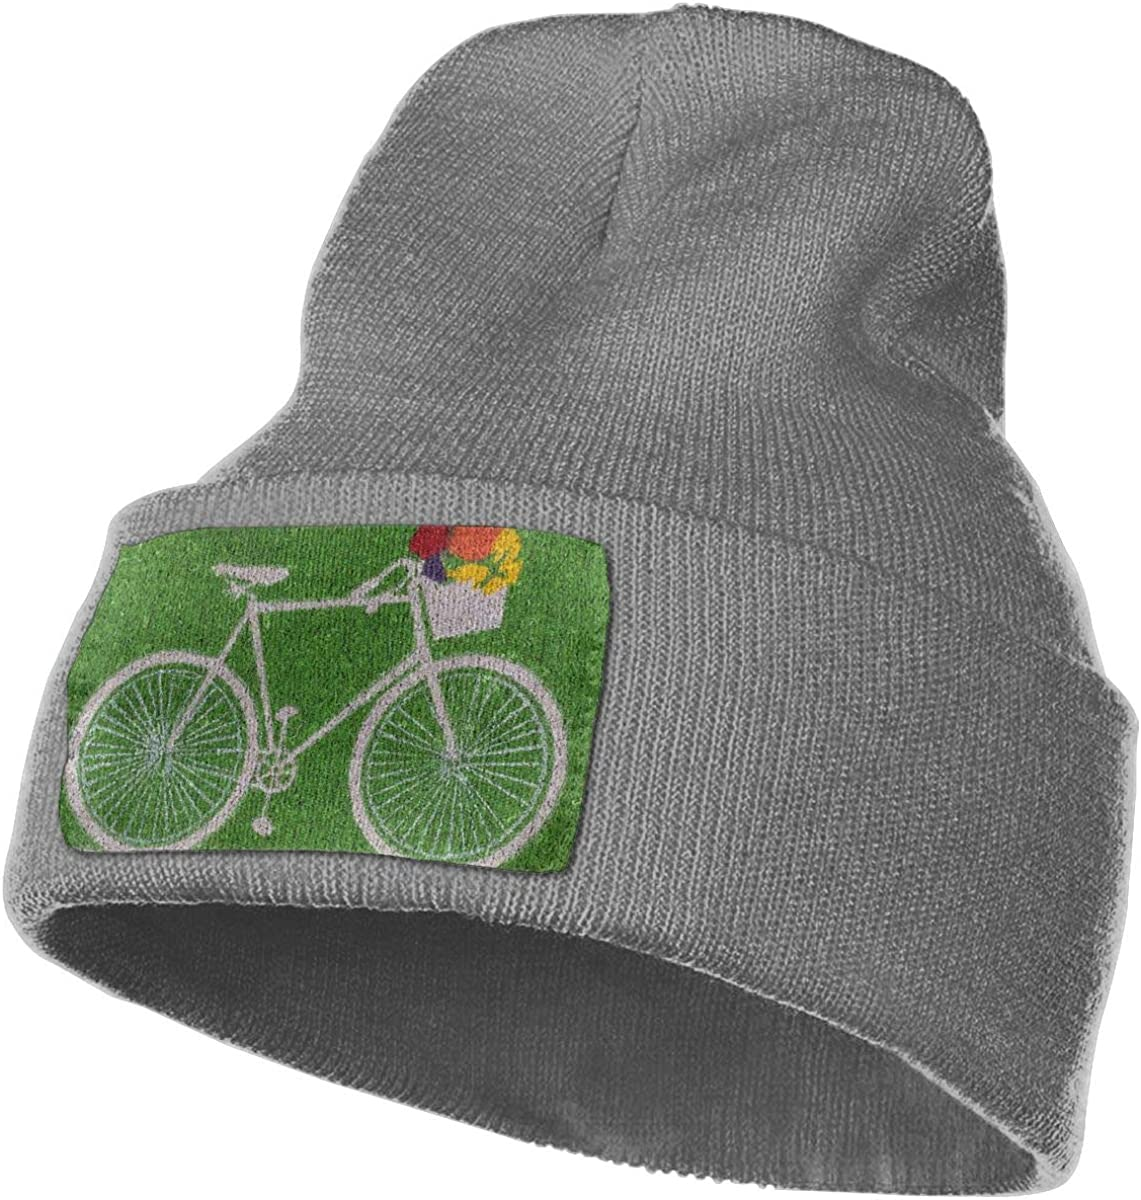 A Bike Painted On The Lawn Cute Beanie Hat Mens Womens 100/% Acrylic Knitted Hat Cap